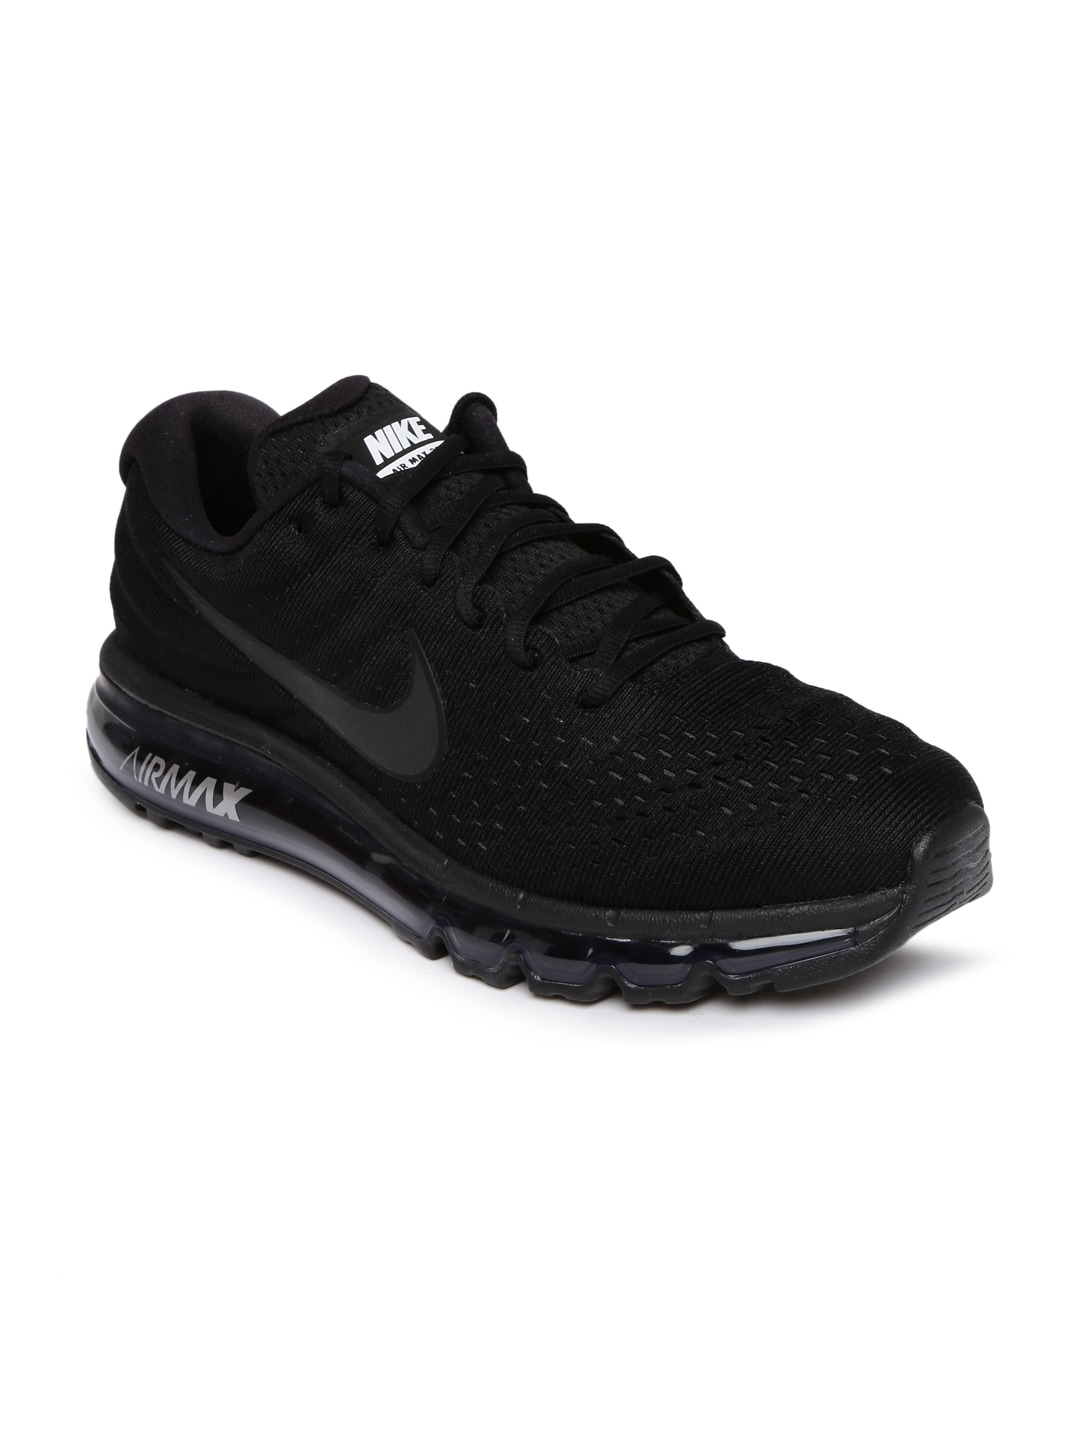 3e537715c75 Price Of Air Max Nike Sports Shoes - Buy Price Of Air Max Nike Sports Shoes  online in India